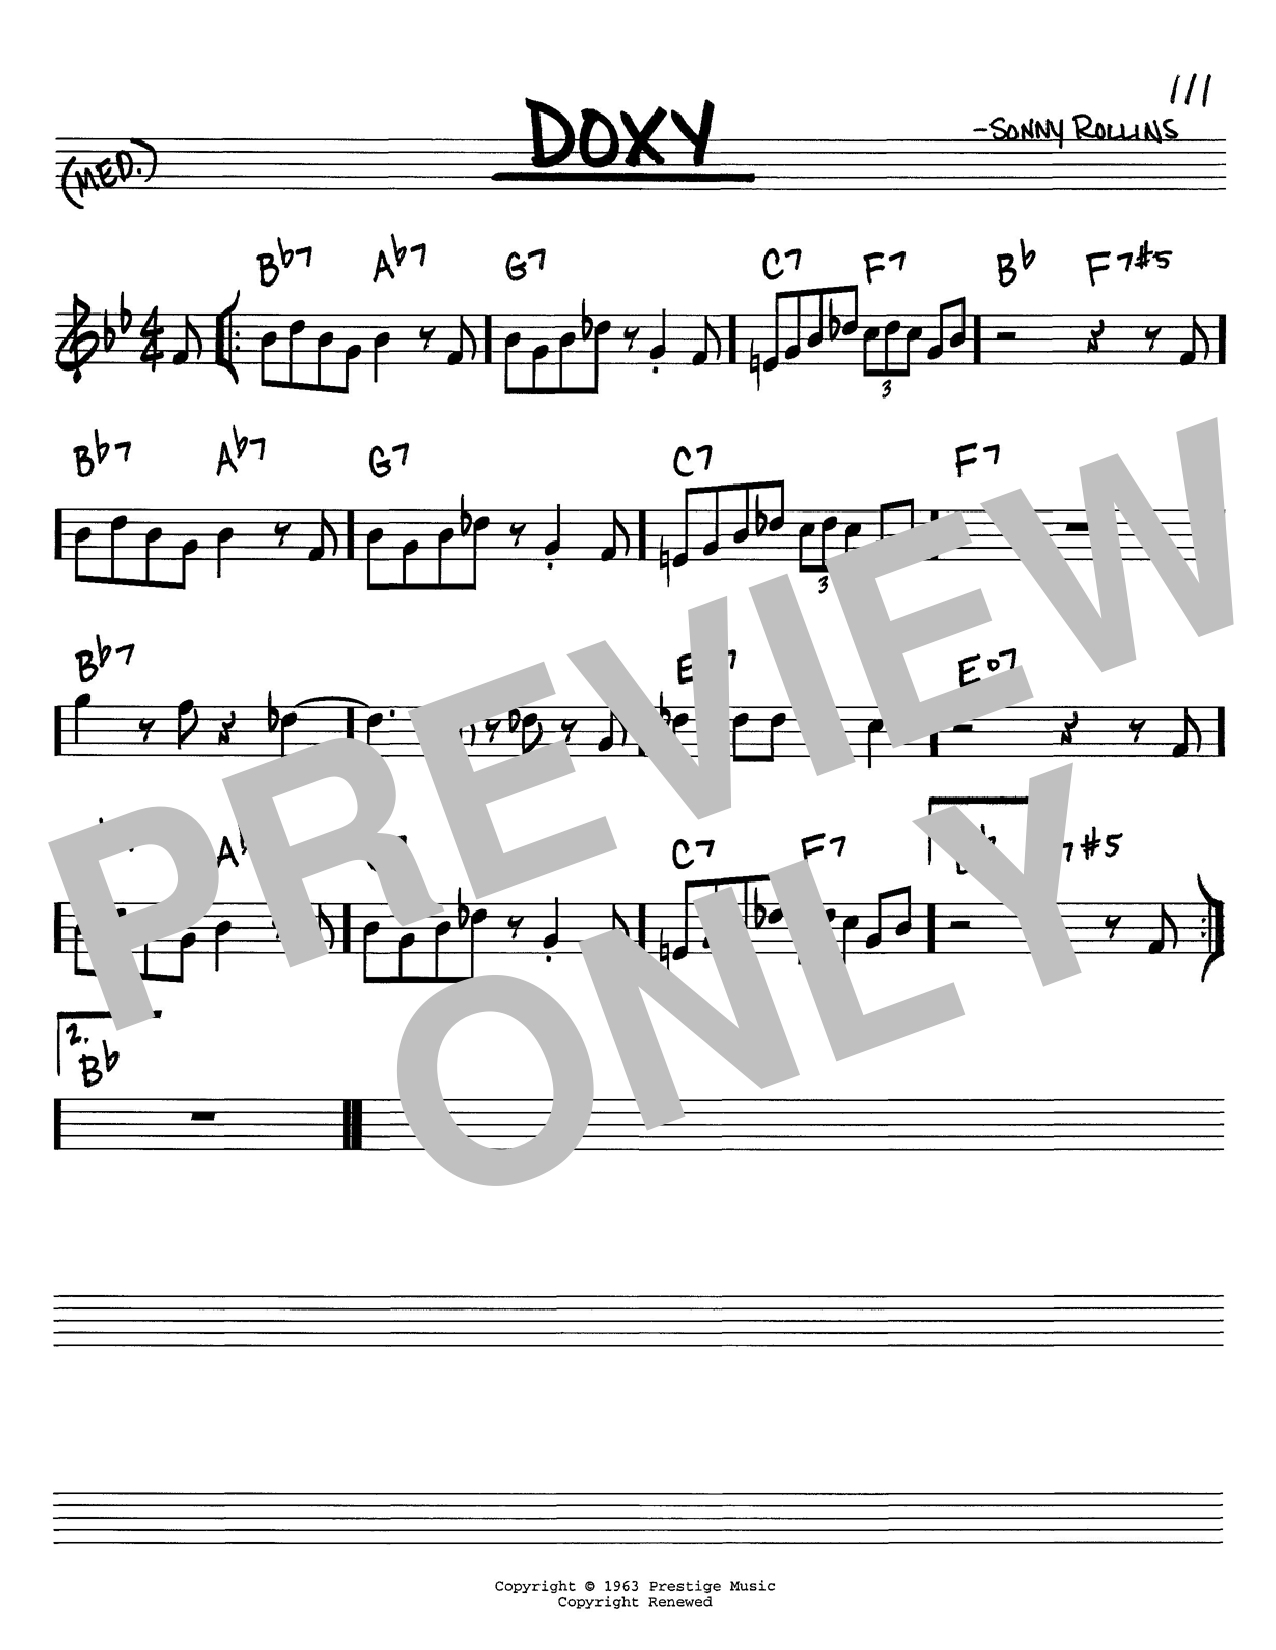 Sonny Rollins Doxy sheet music notes and chords. Download Printable PDF.